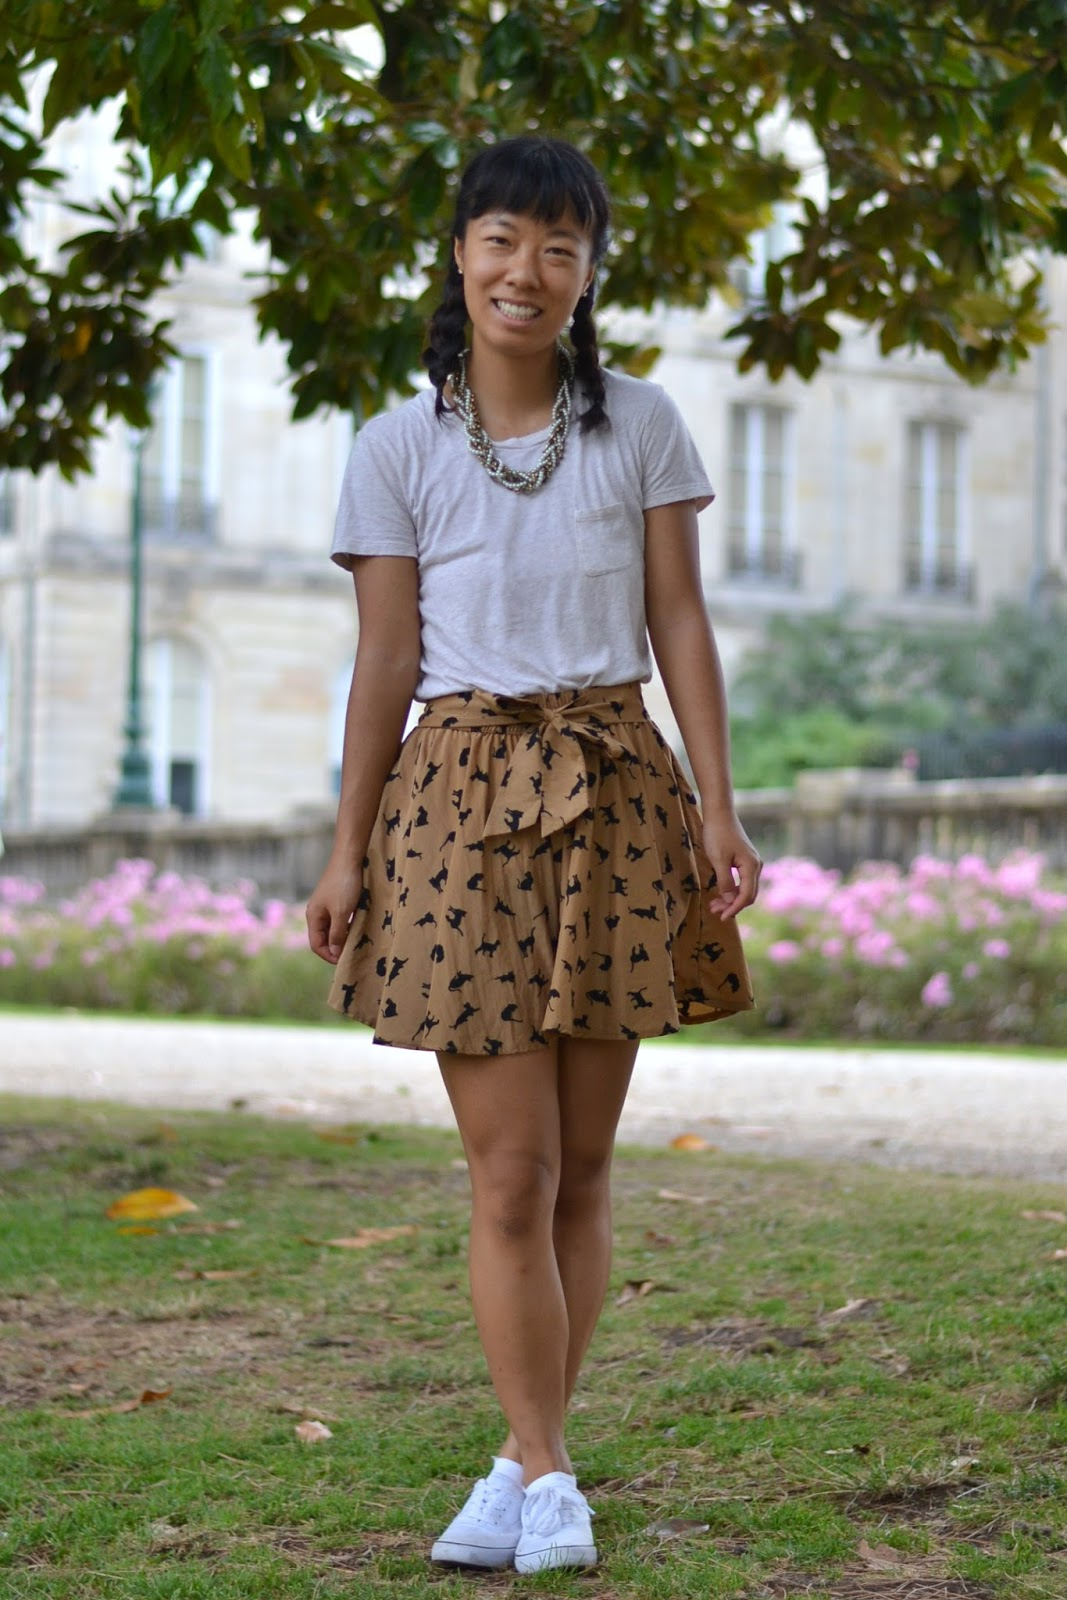 cat skirt outfit, study abroad france outfit, college style